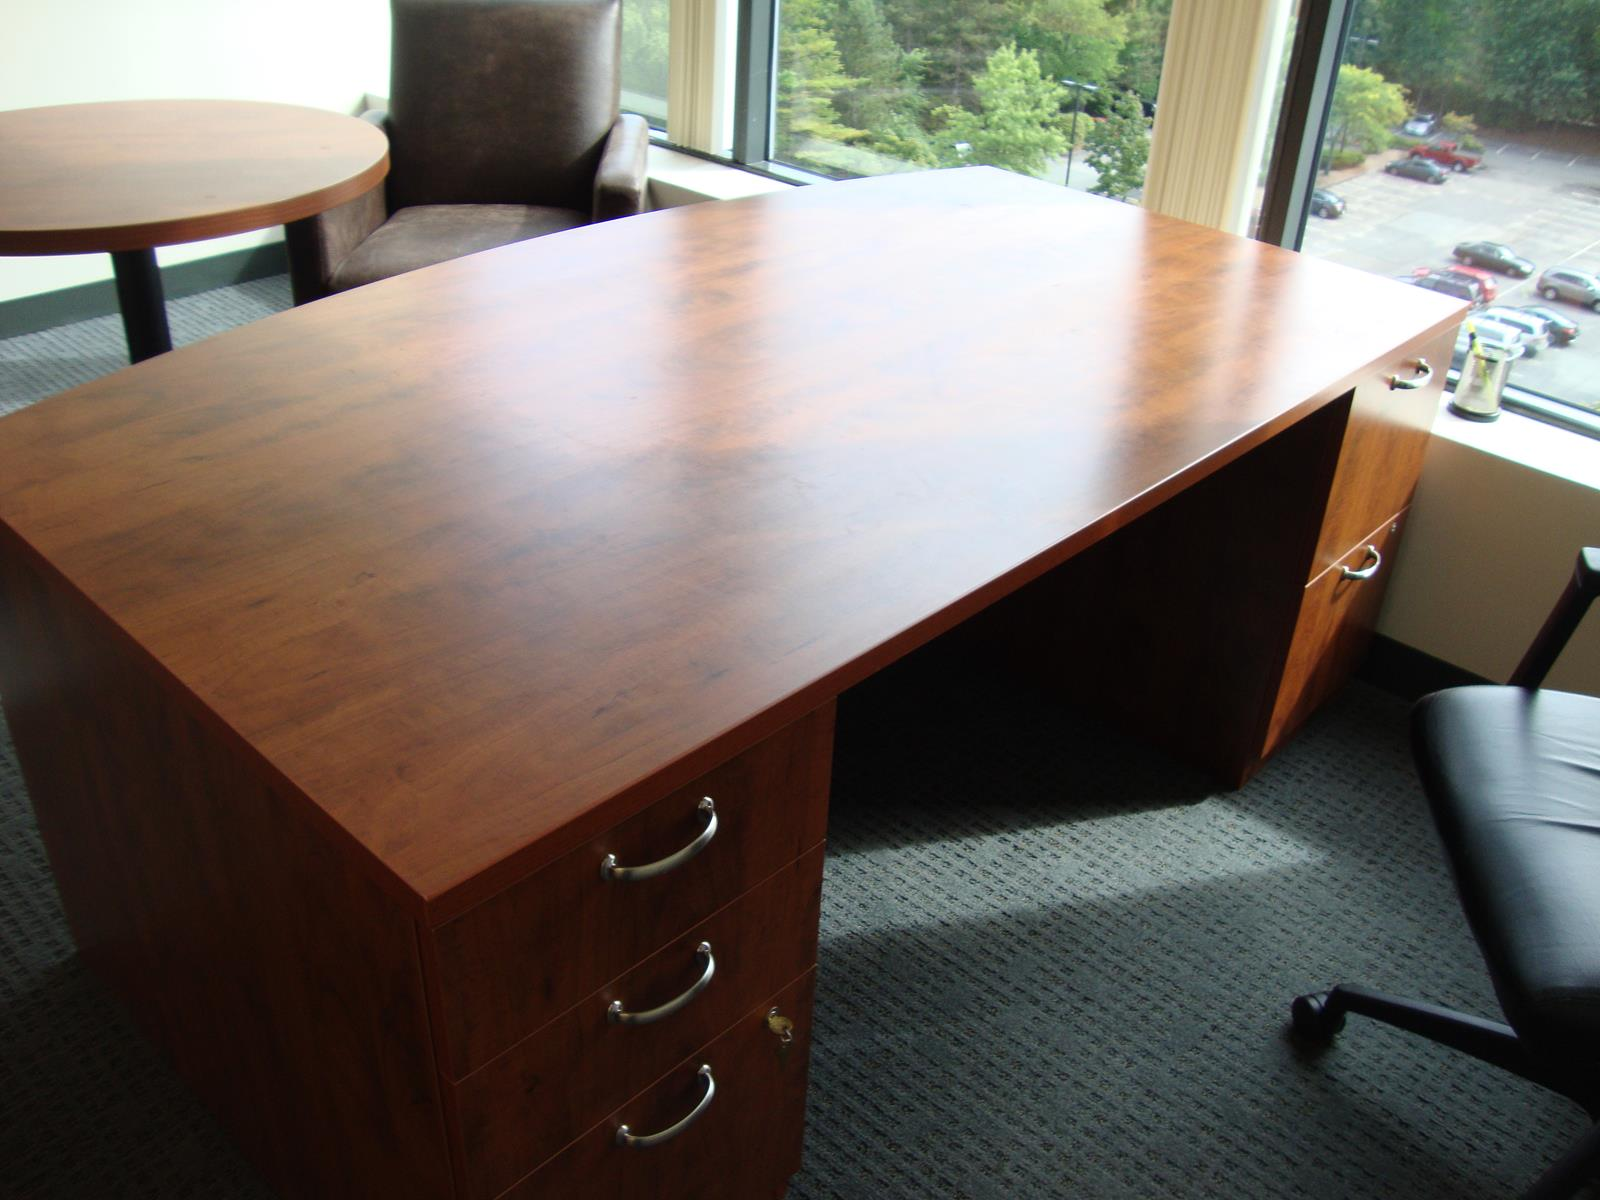 peartreeofficefurniture_peartreeofficefurniture_dsc07083.jpg